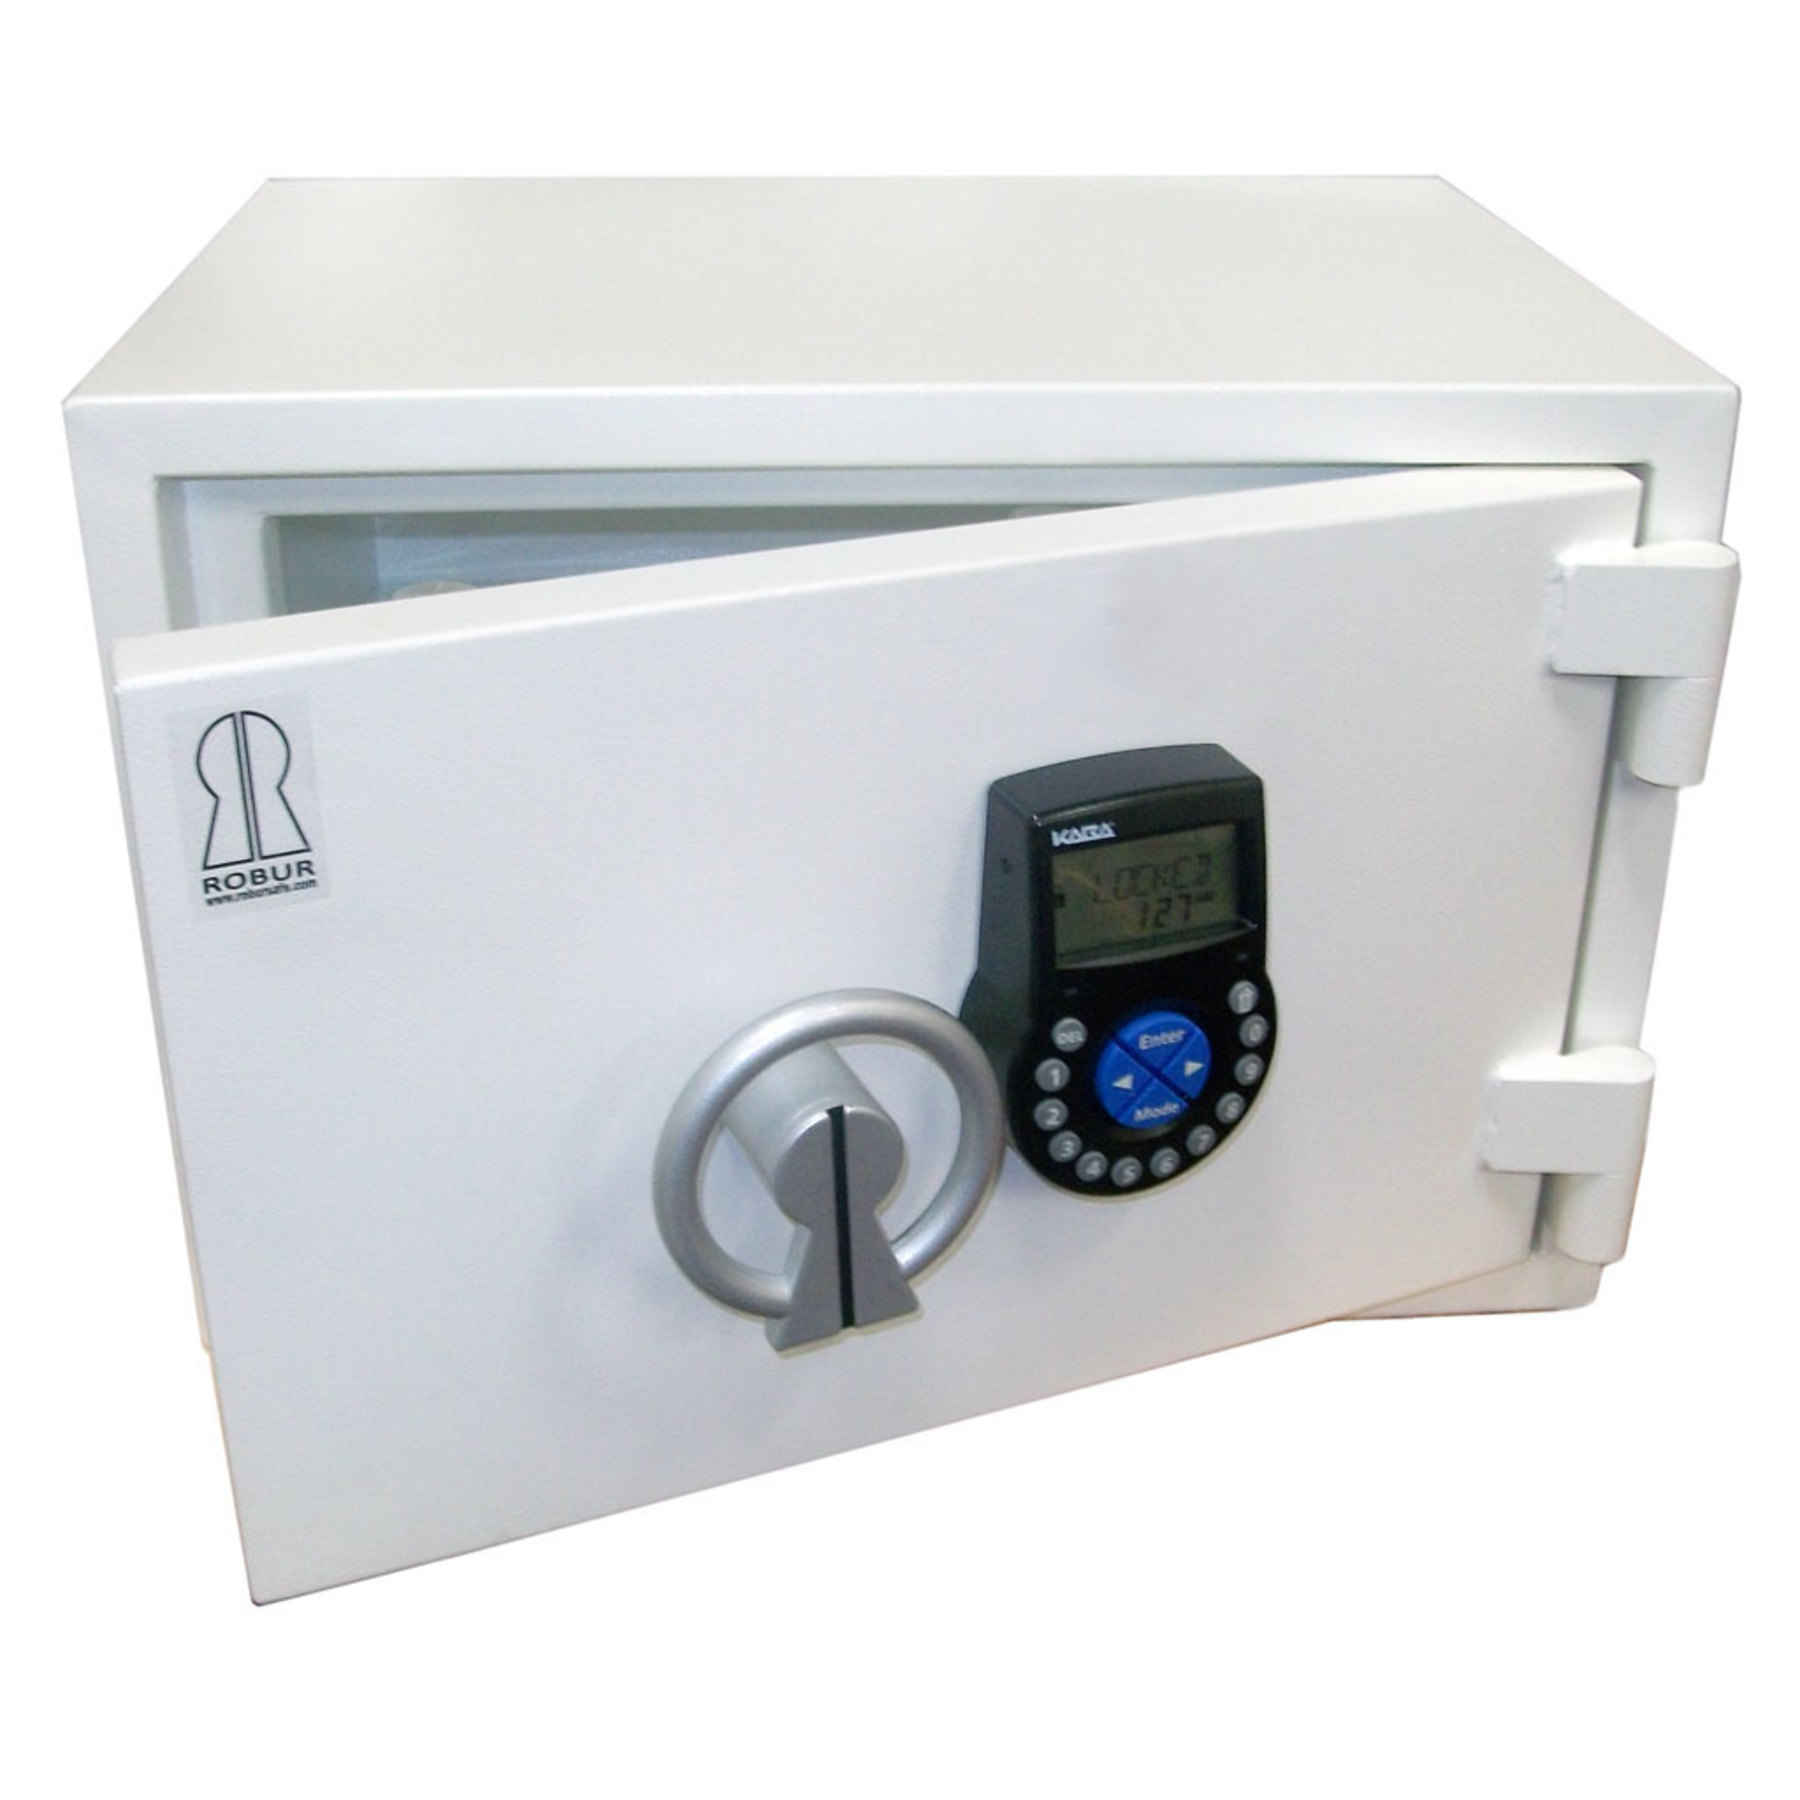 Robur I-340 Security Safe with Kaba 525 Time Lock